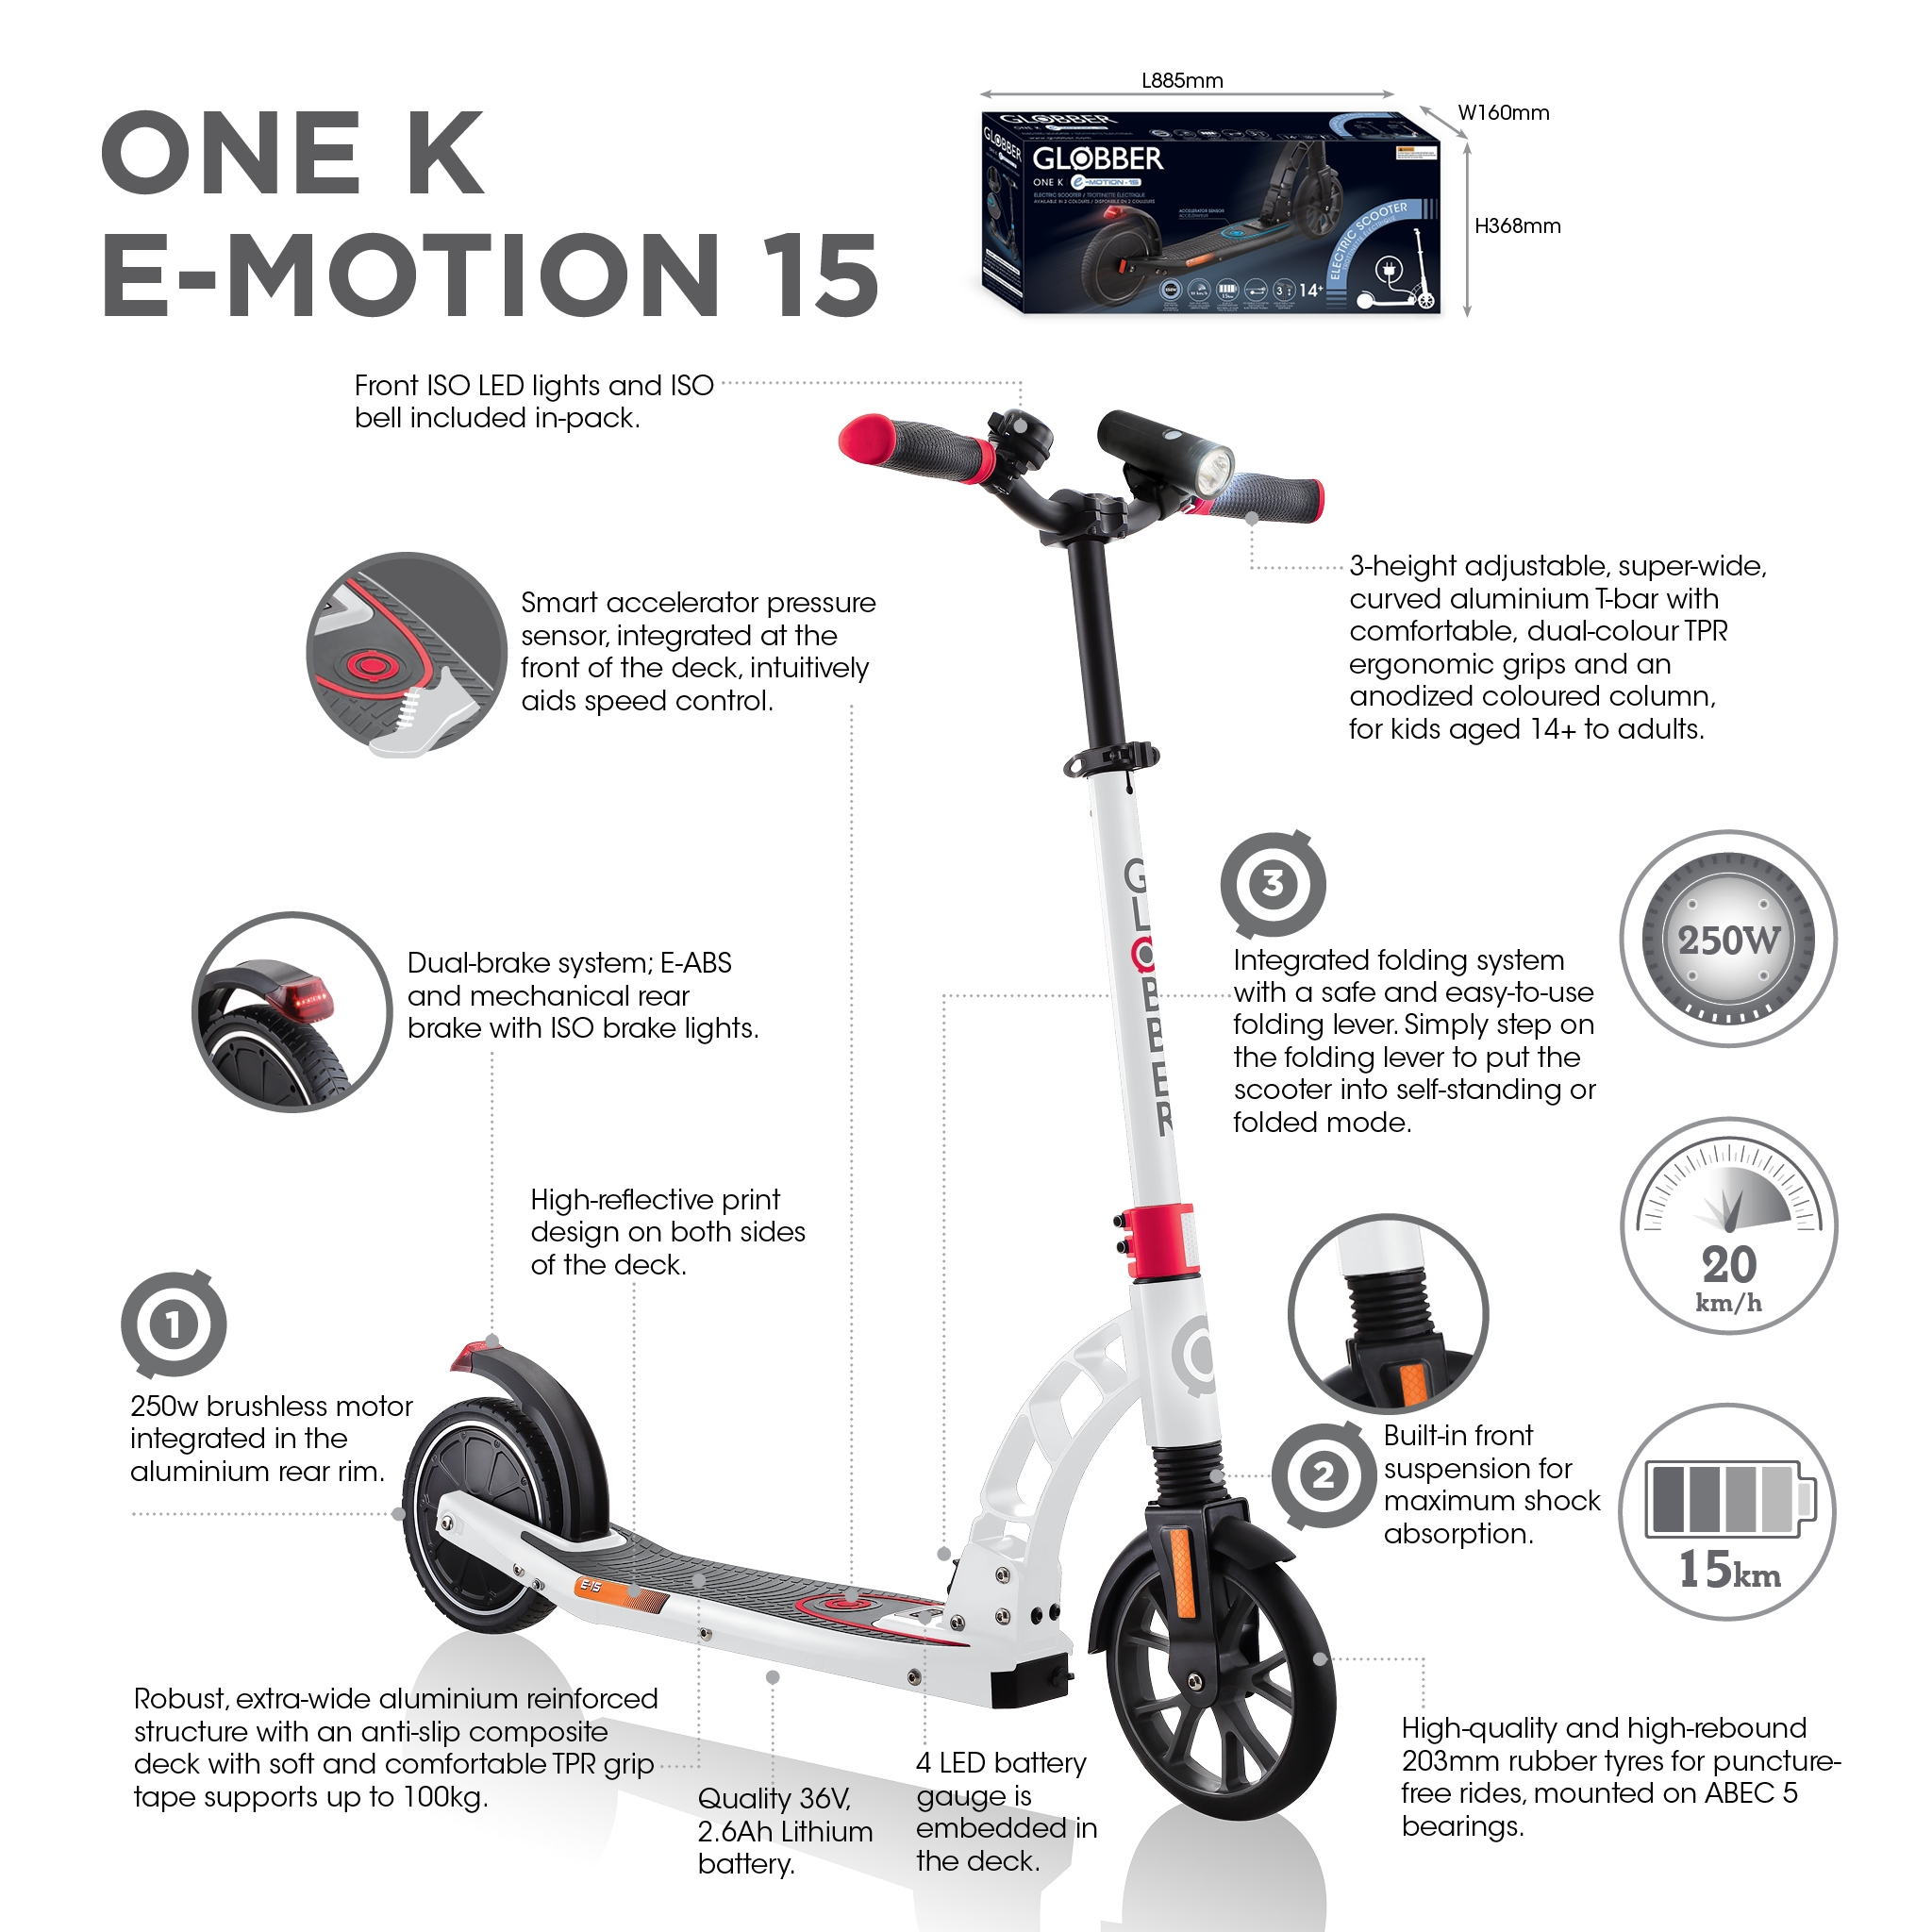 Globber-ONE-K-E-MOTION-15-electric-scooter-with-front-suspension-and-rear-ISO-brake-lights-and-front-ISO-LED-lights